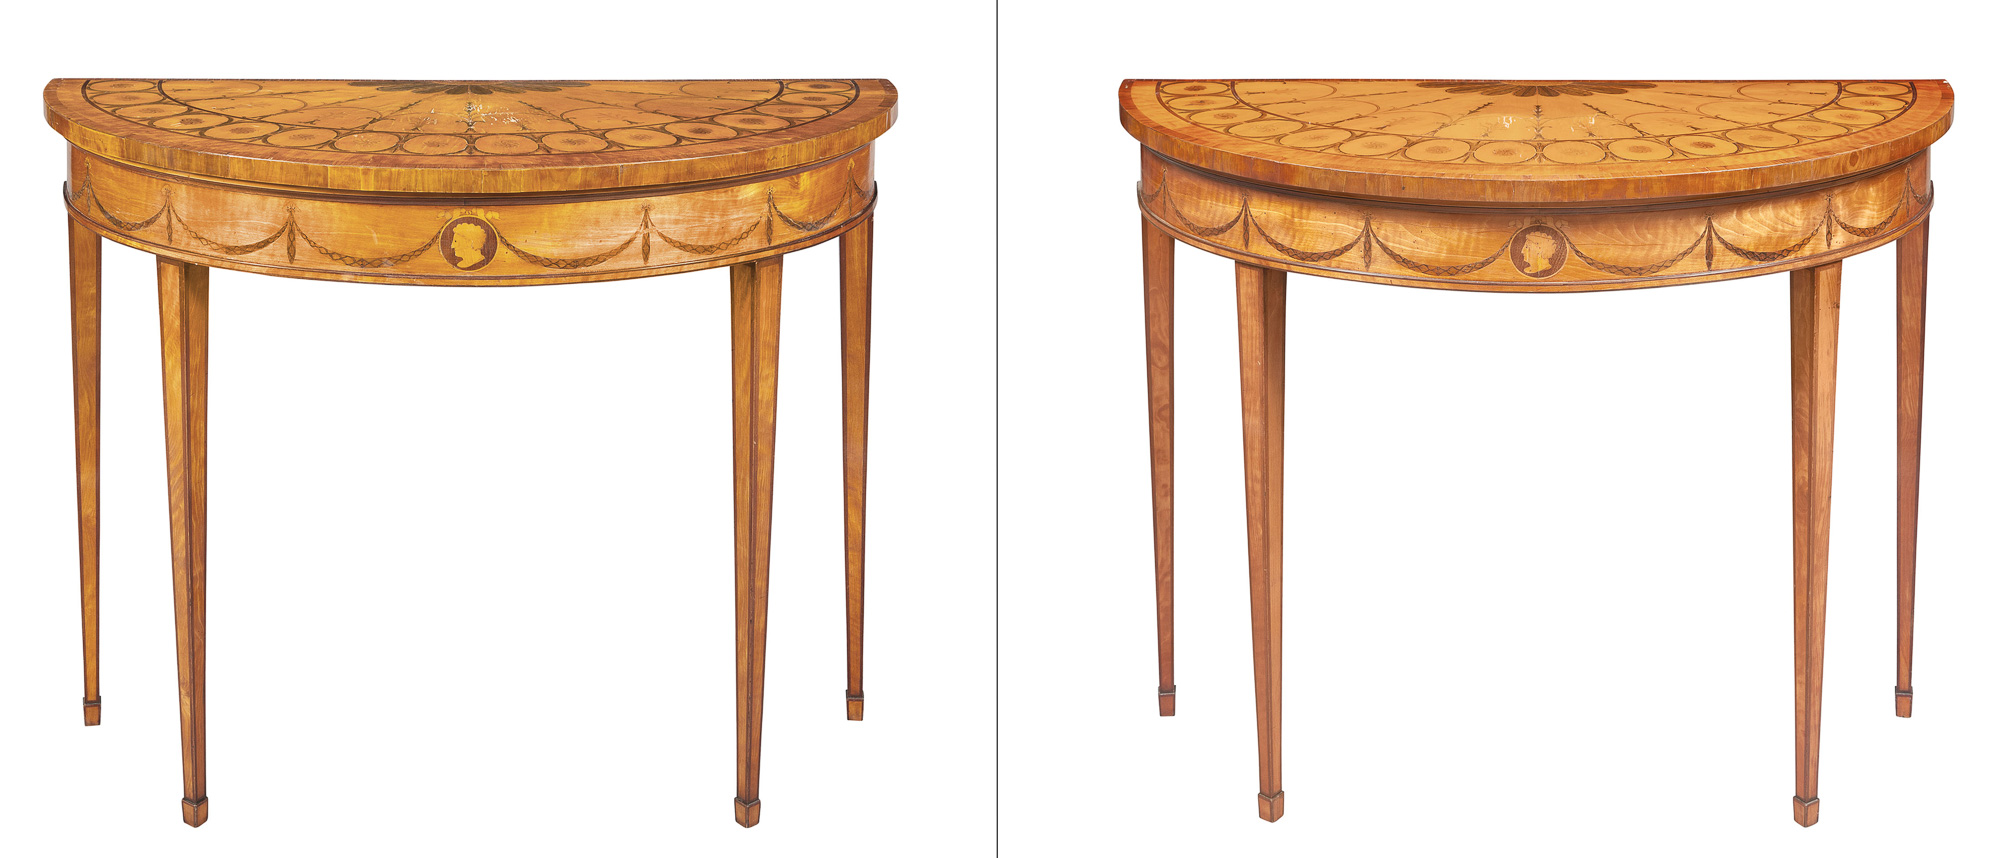 Lot image - Pair of George III Satinwood, Tulipwood and Marquetry Pier Tables